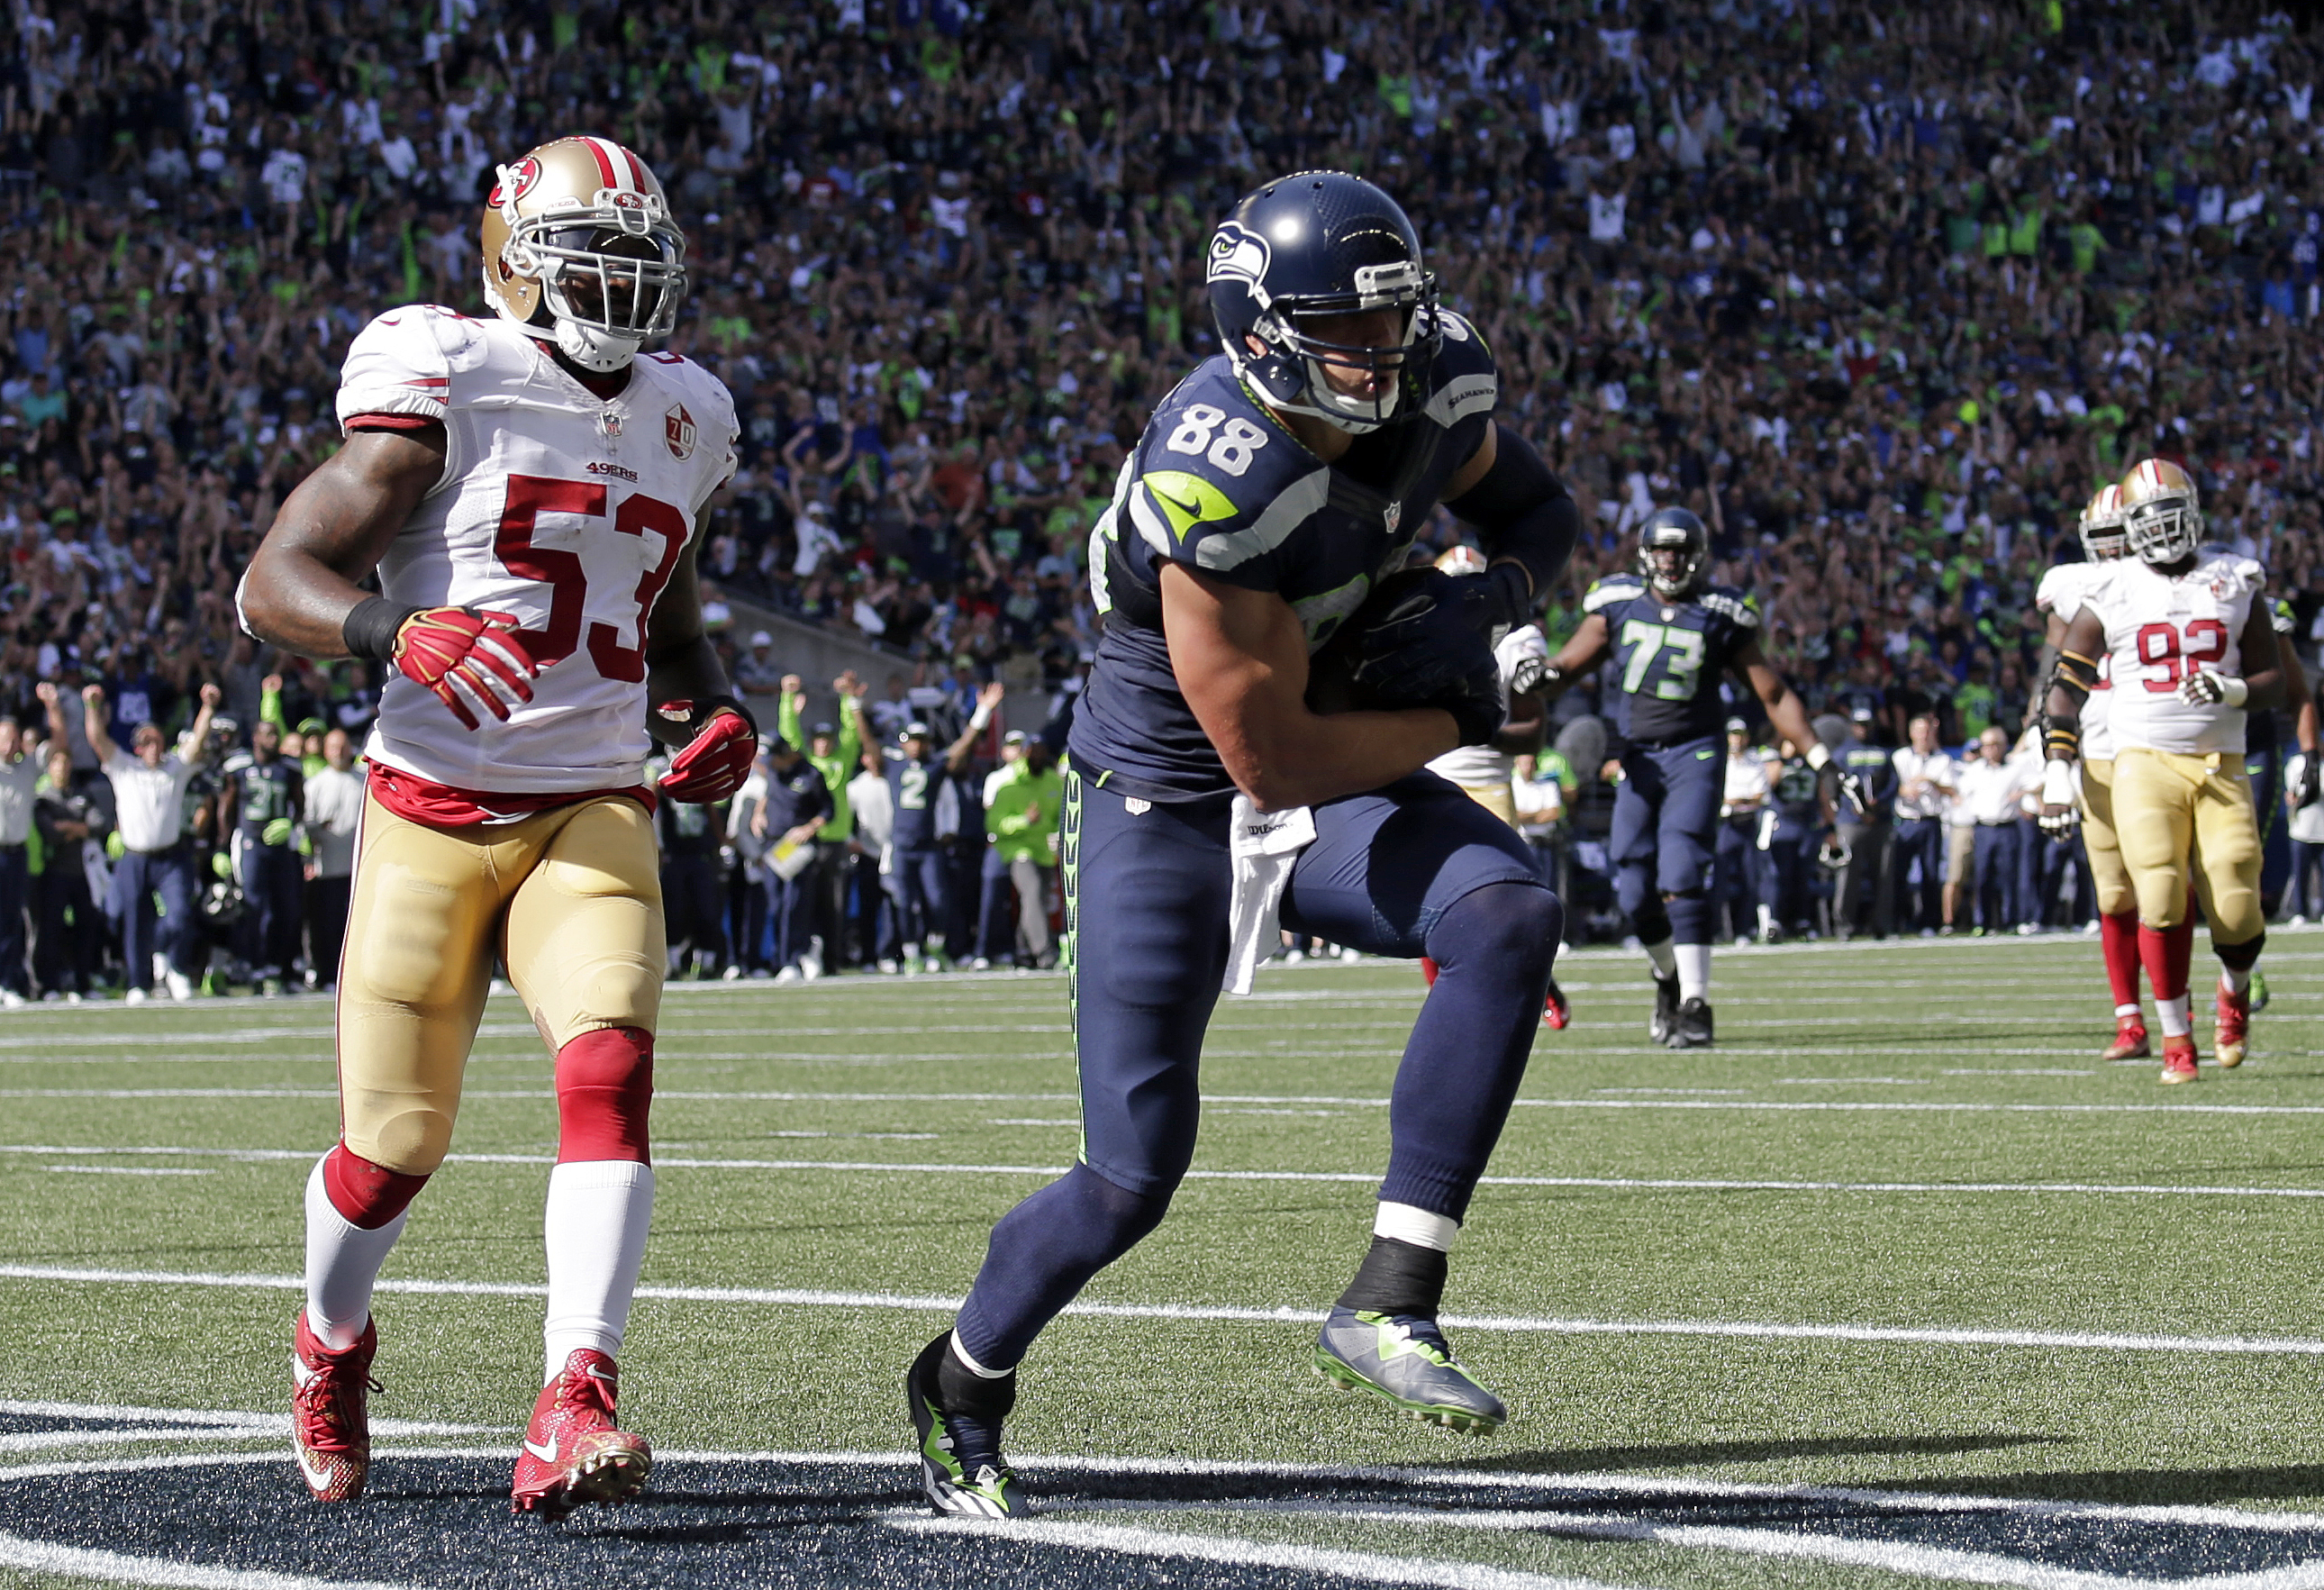 Seattle Seahawks' Jimmy Graham (88) scores a touchdown in front of San Francisco 49ers'n NaVorro Bowman in the first half of an NFL football game, Sunday, Sept. 25, 2016, in Seattle. (AP Photo/John Froschauer)